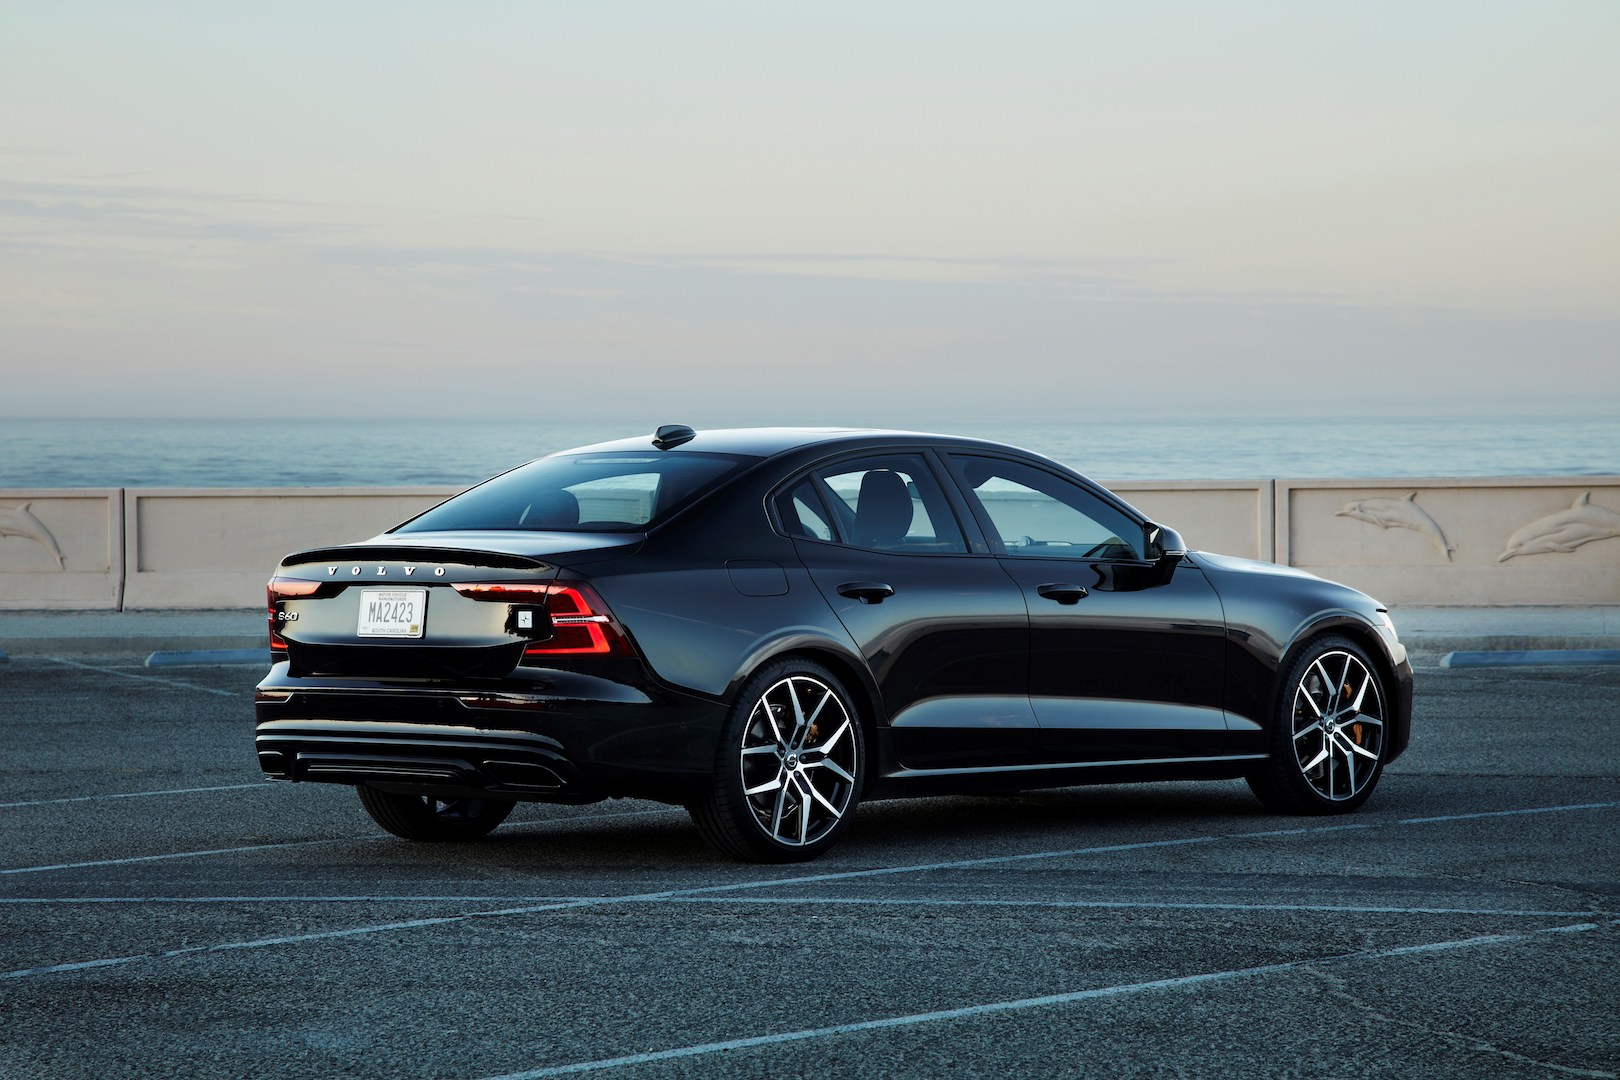 2019 Volvo S60 T8 Twin Engine Review Half Baked Hybrid Shows Volvo Is Miles Behind Electric Car Leaders